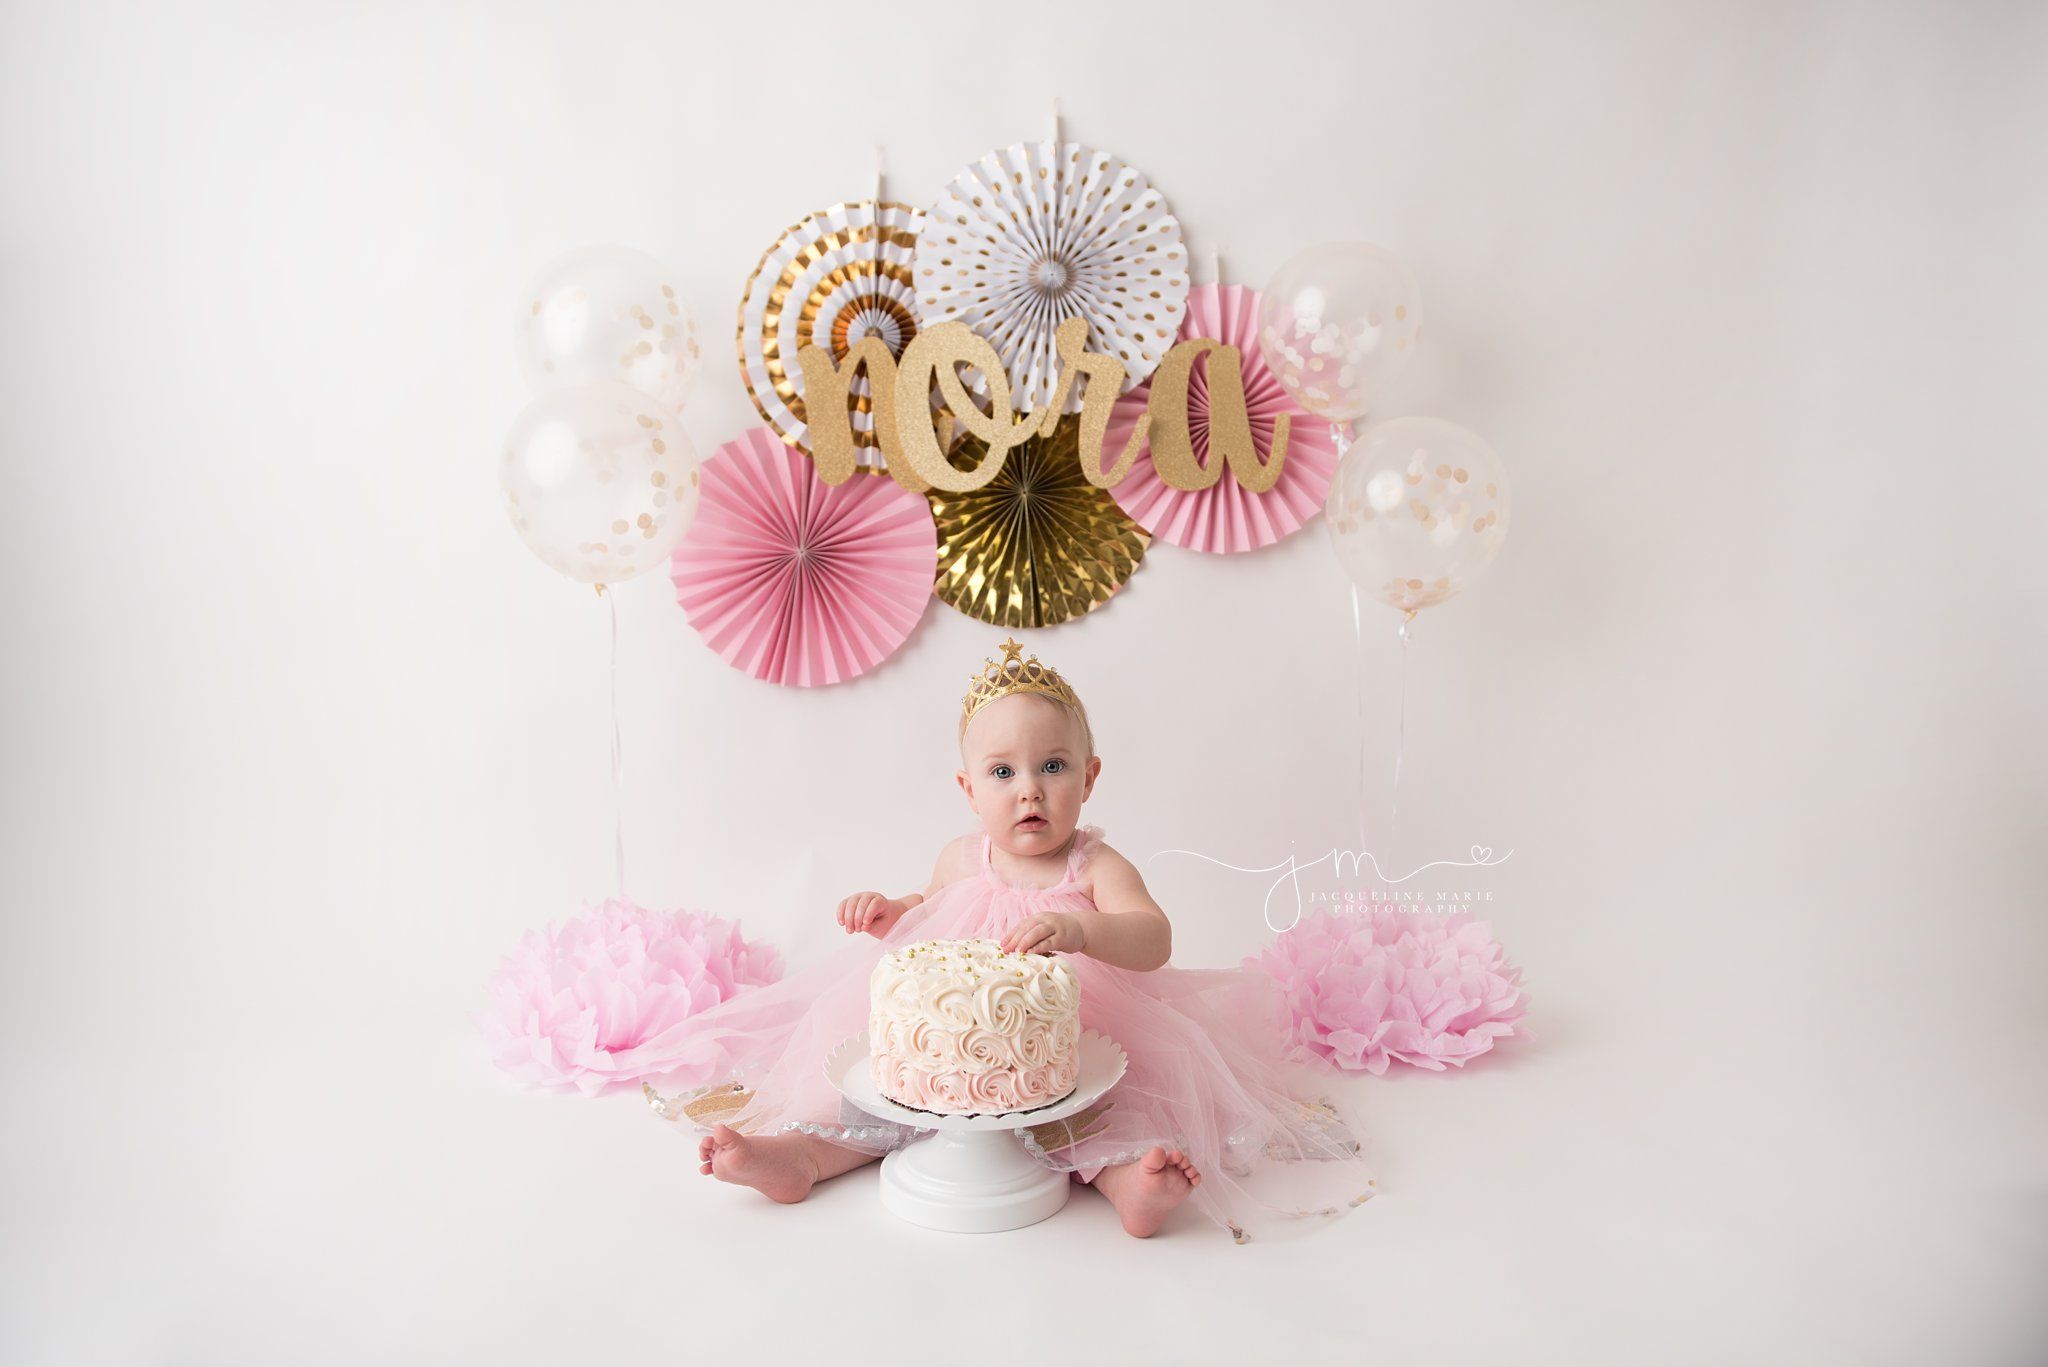 columbus ohio cake smash photographer features pink and gold setup with balloons